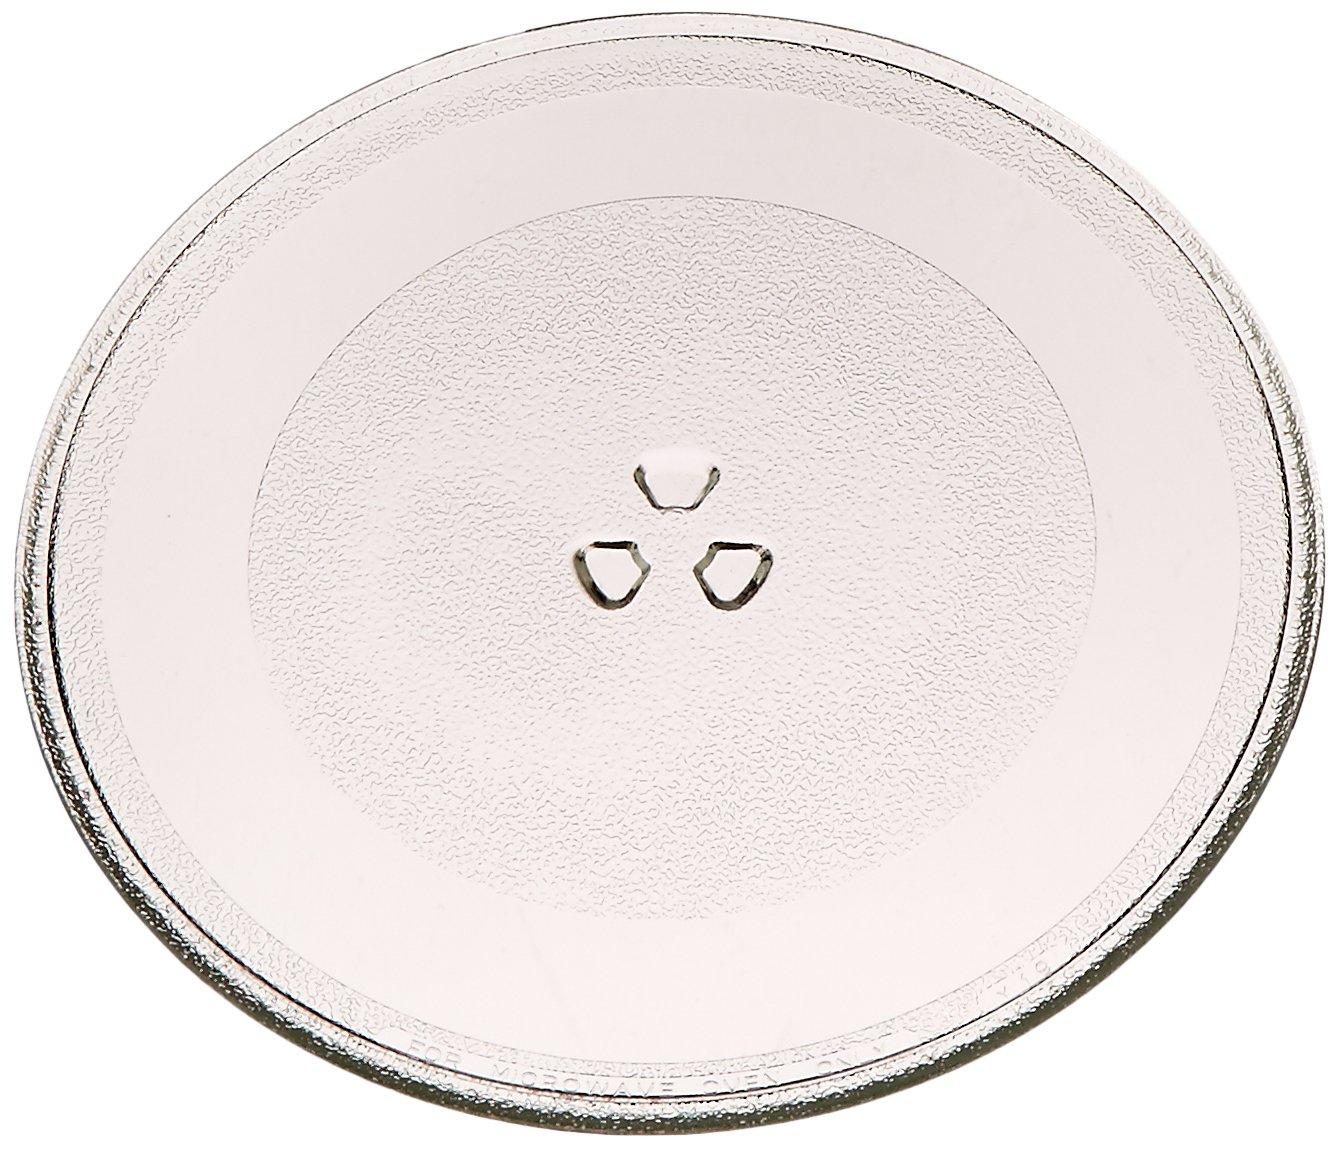 Kenmore Microwave Glass Turntable Tray / Plate 12 3/4'' 1B71961F by Kenmore